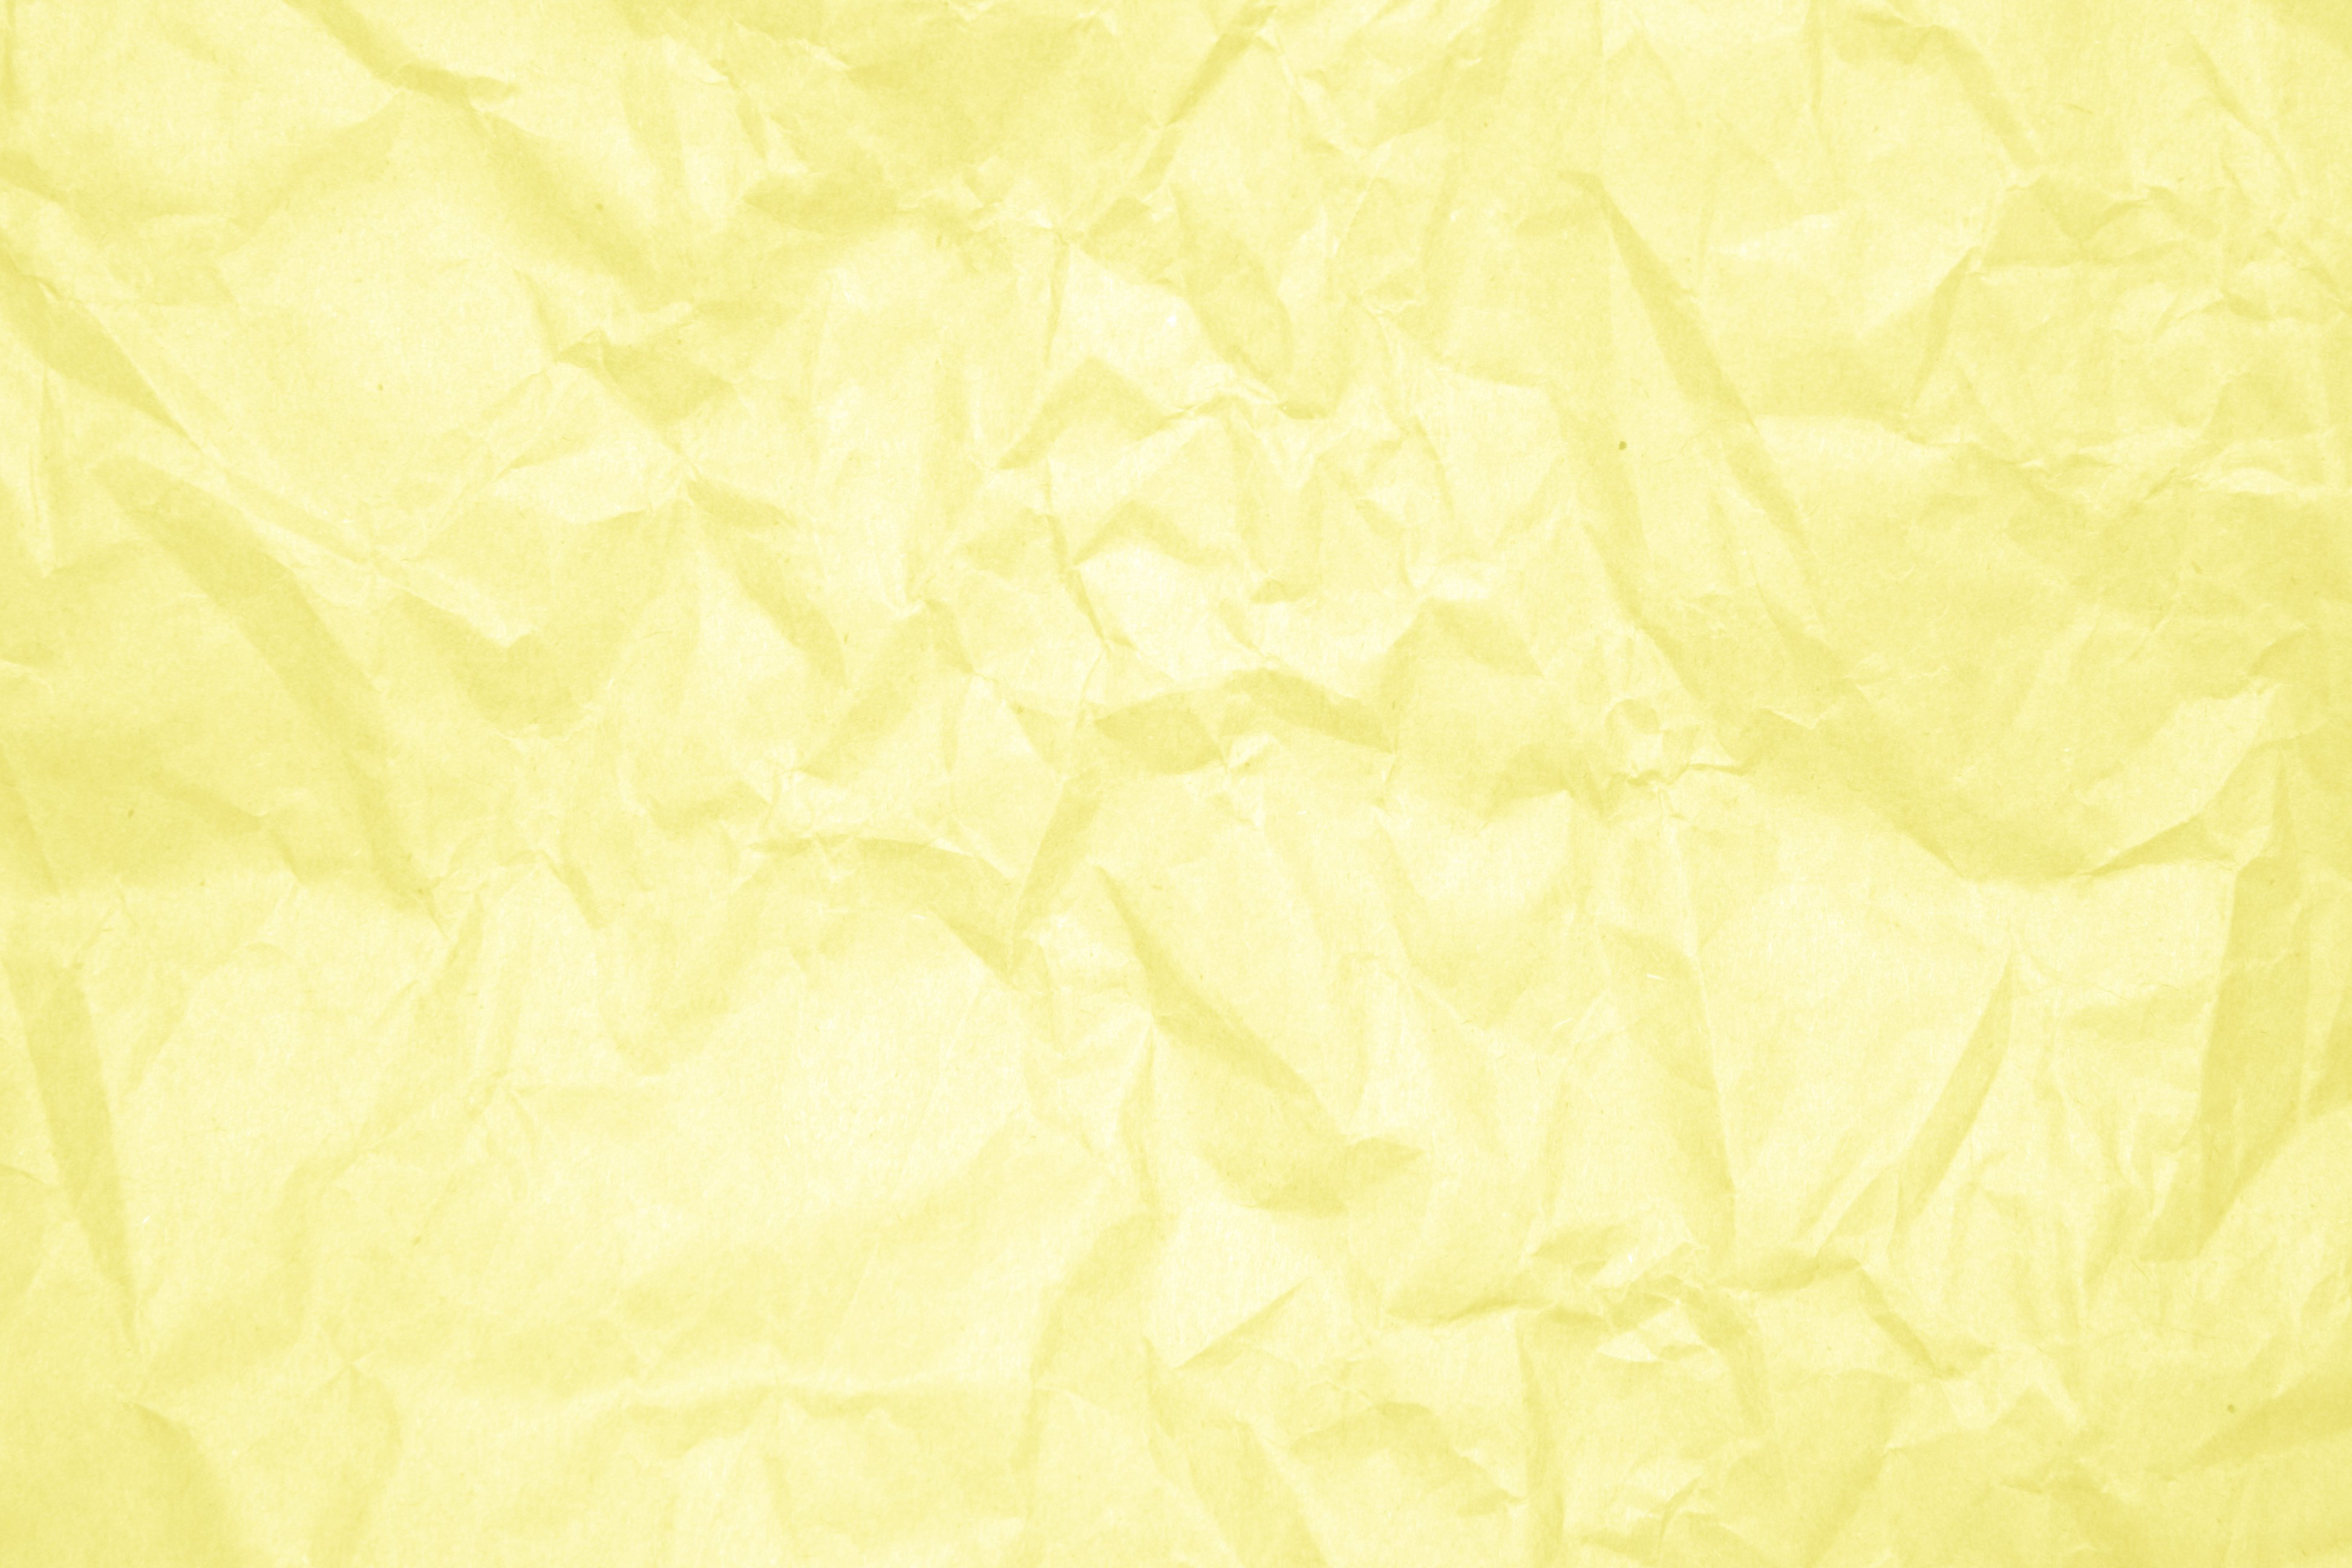 Crumpled Yellow Paper Texture Picture Photograph Photos 3888x2592